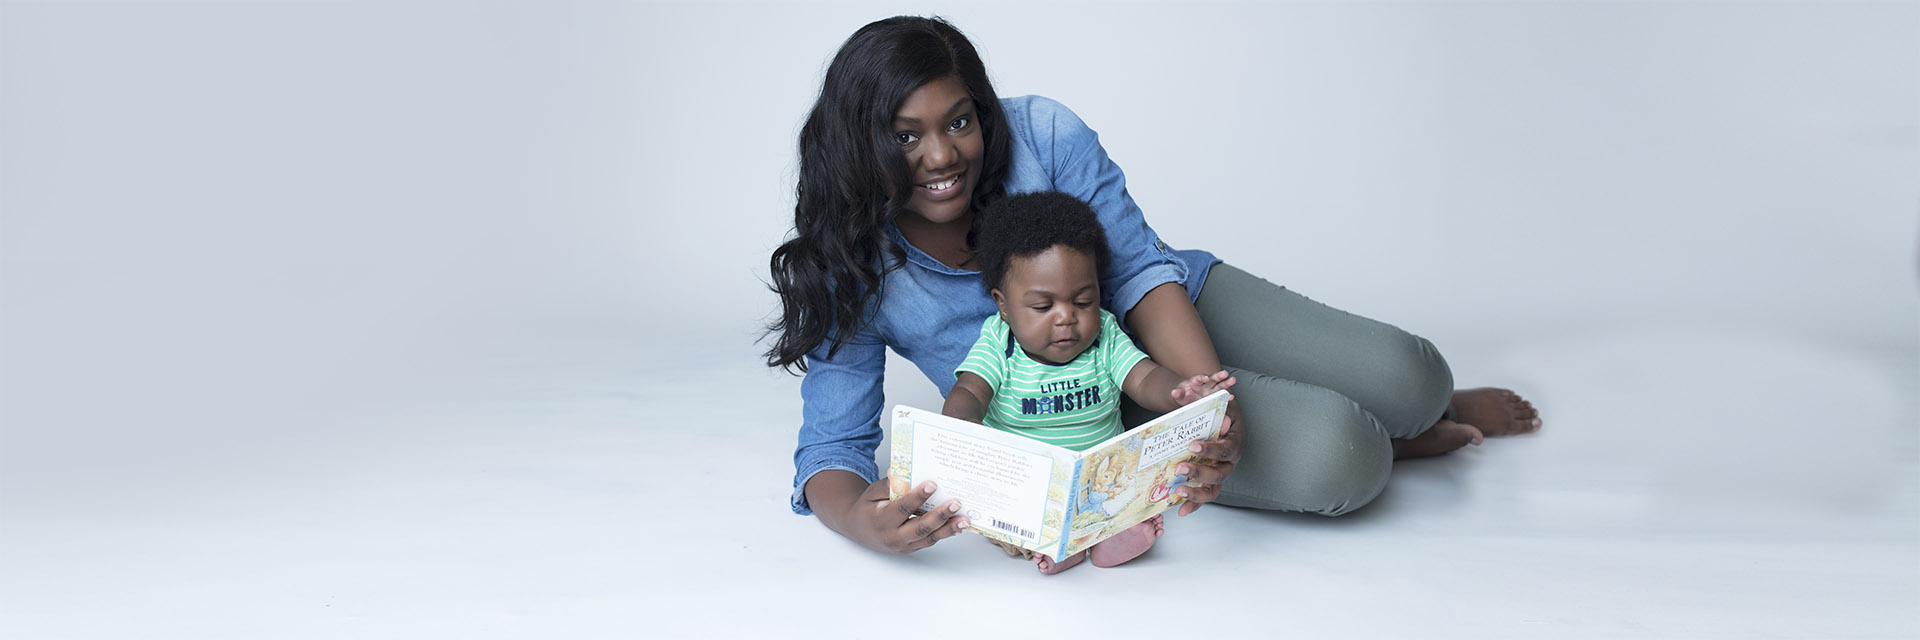 Mom and Baby on Floor Holding a Book